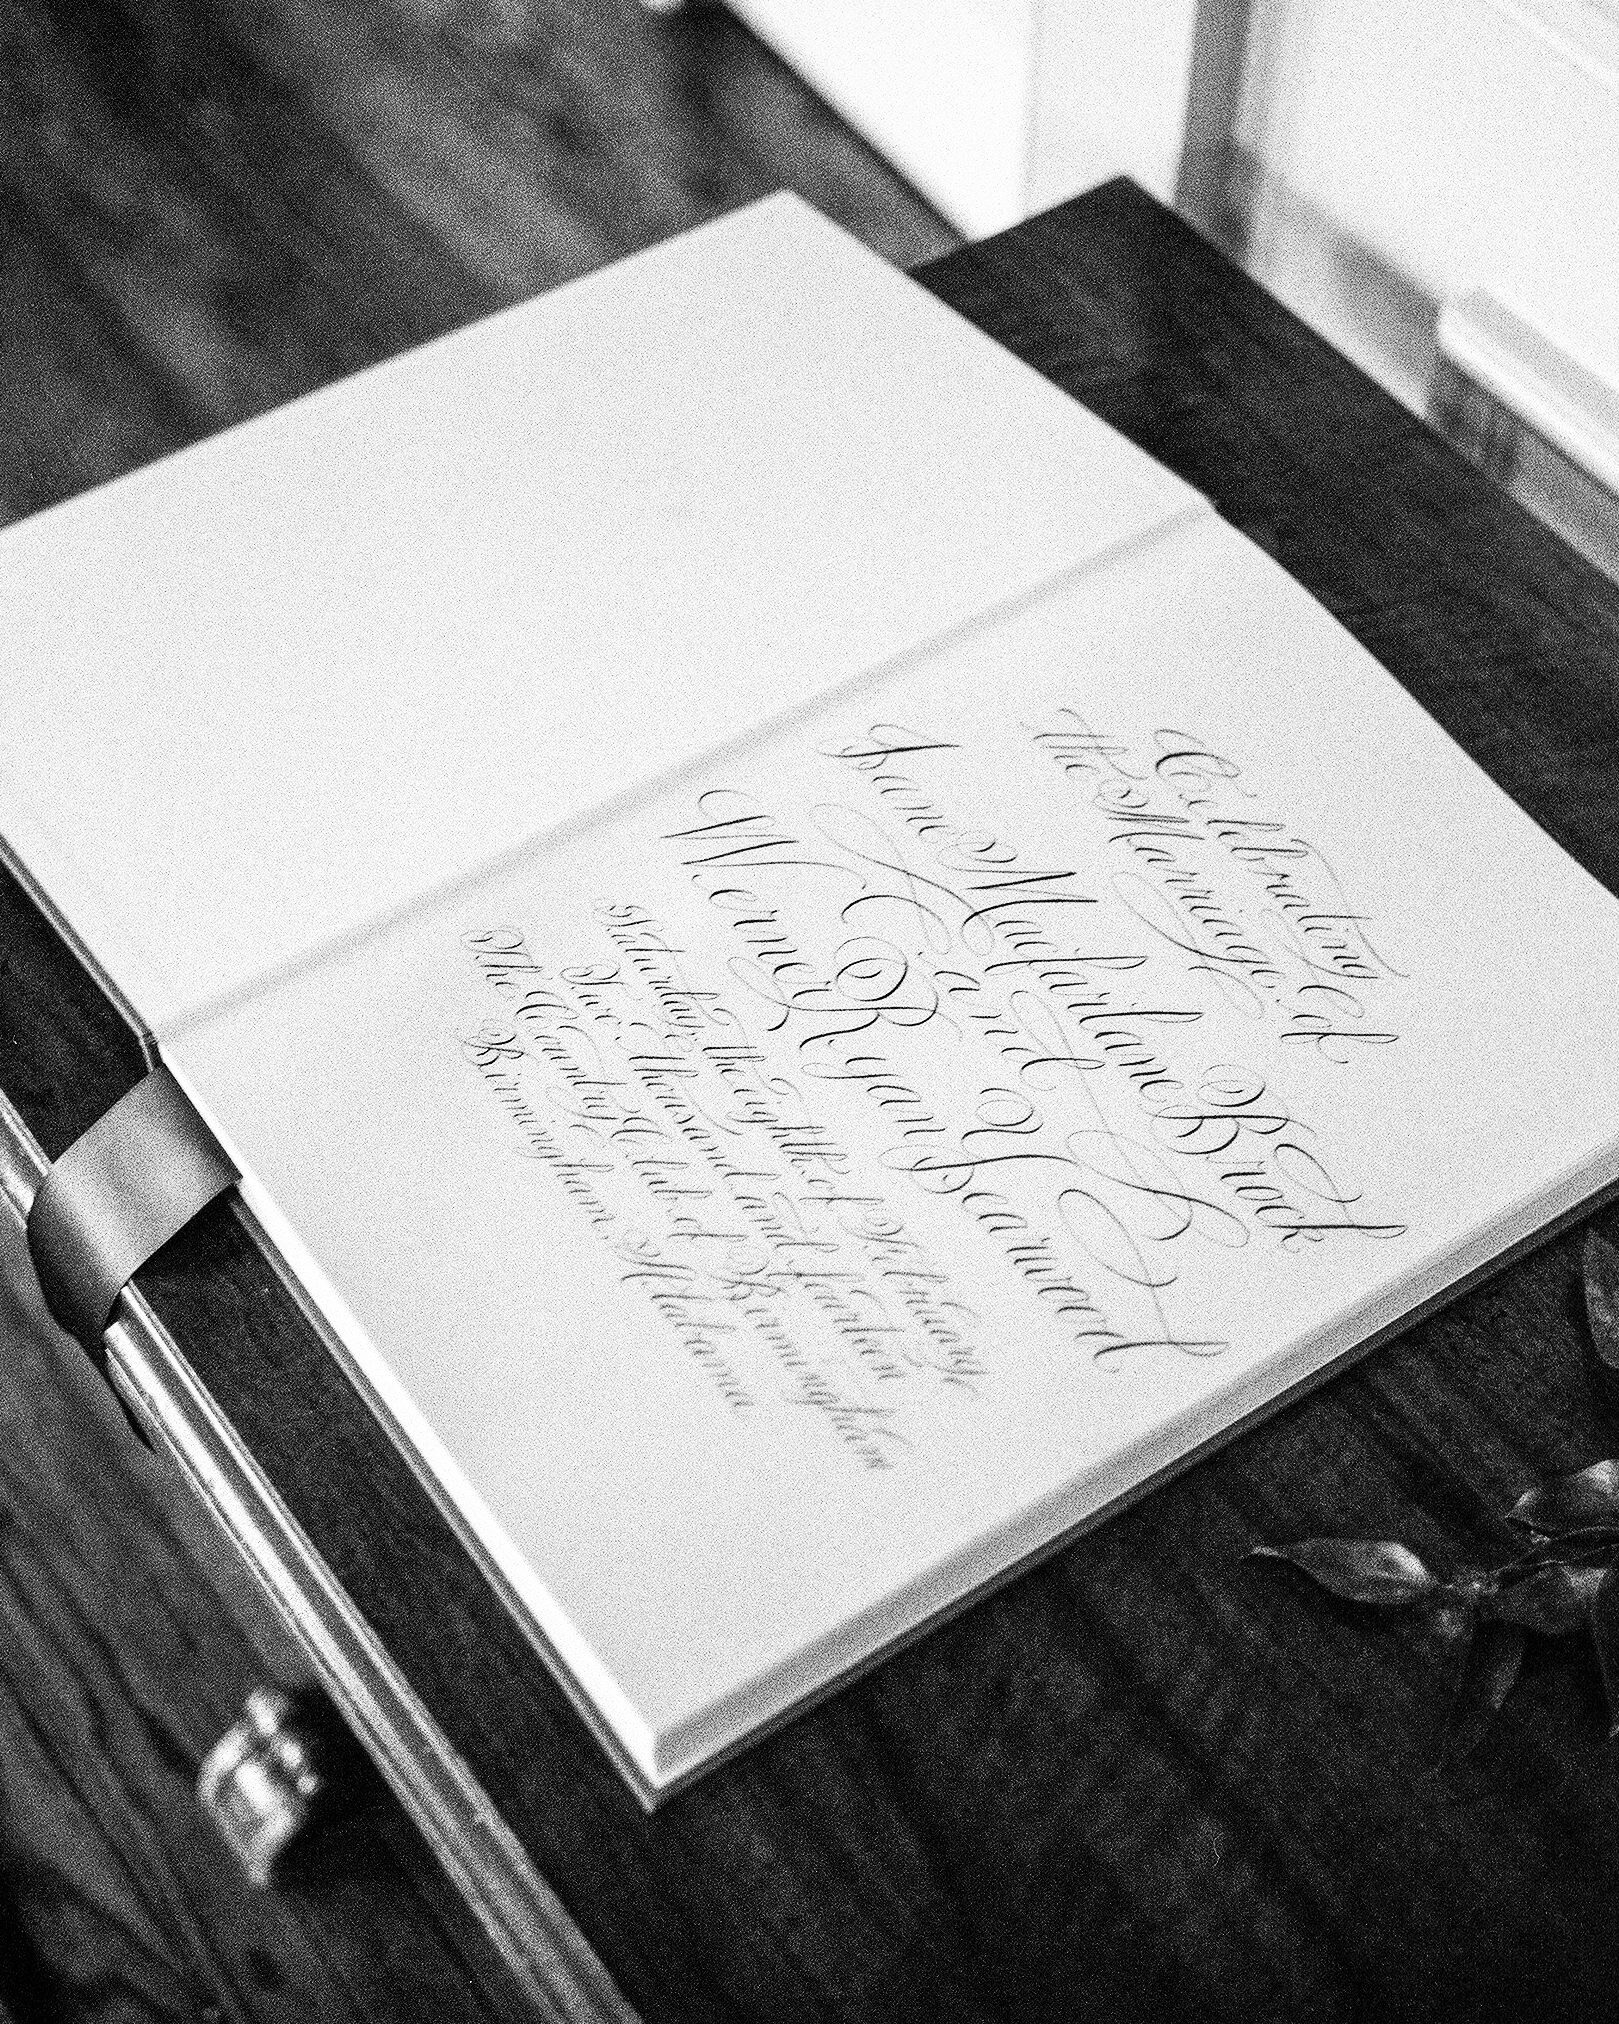 jane-ryan-wedding-guestbook-150-s111352-0714.jpg